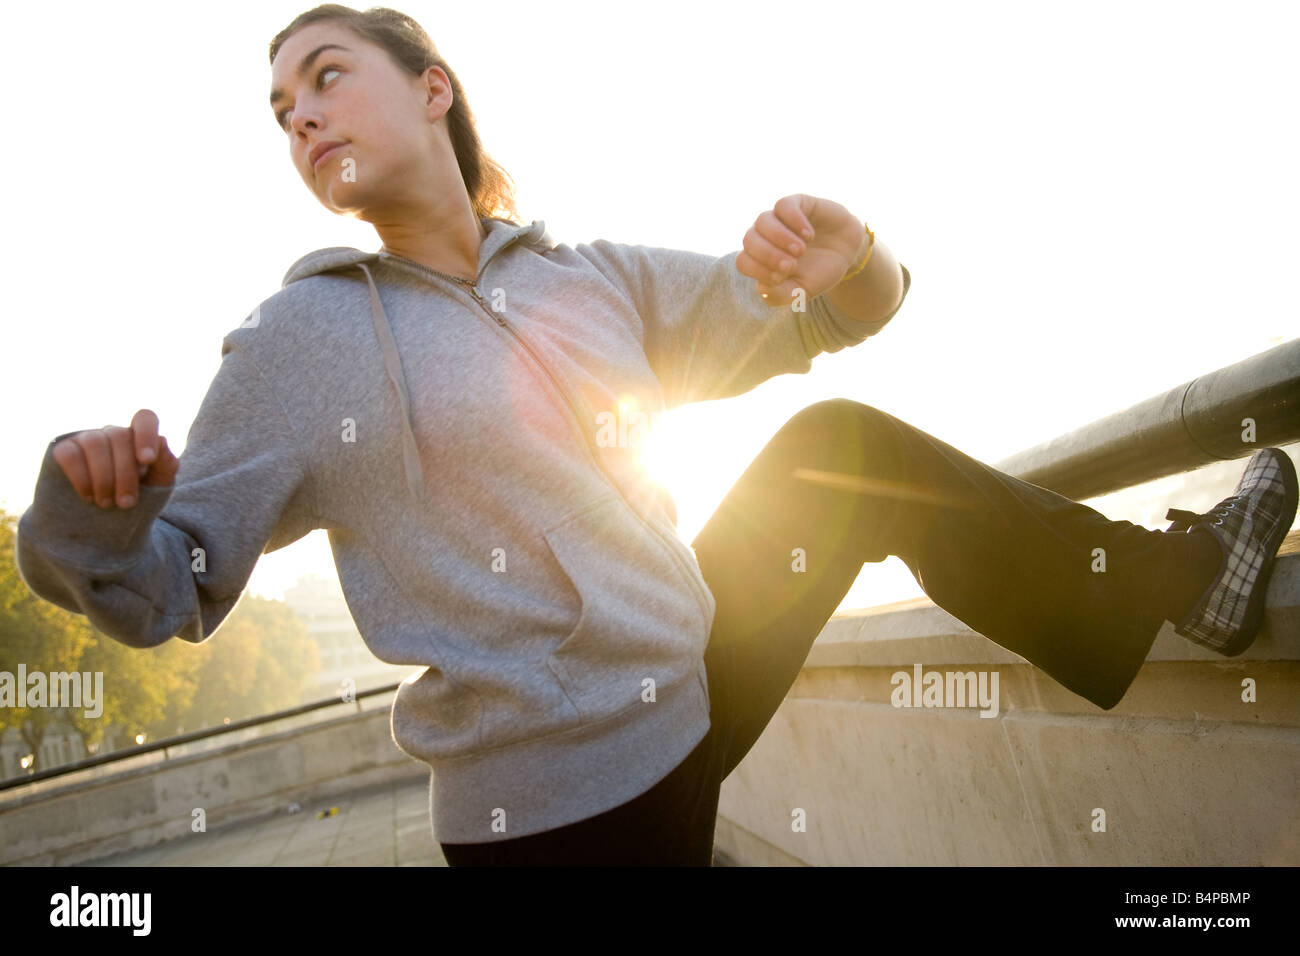 Woman Stretching Before Excercise - Stock Image